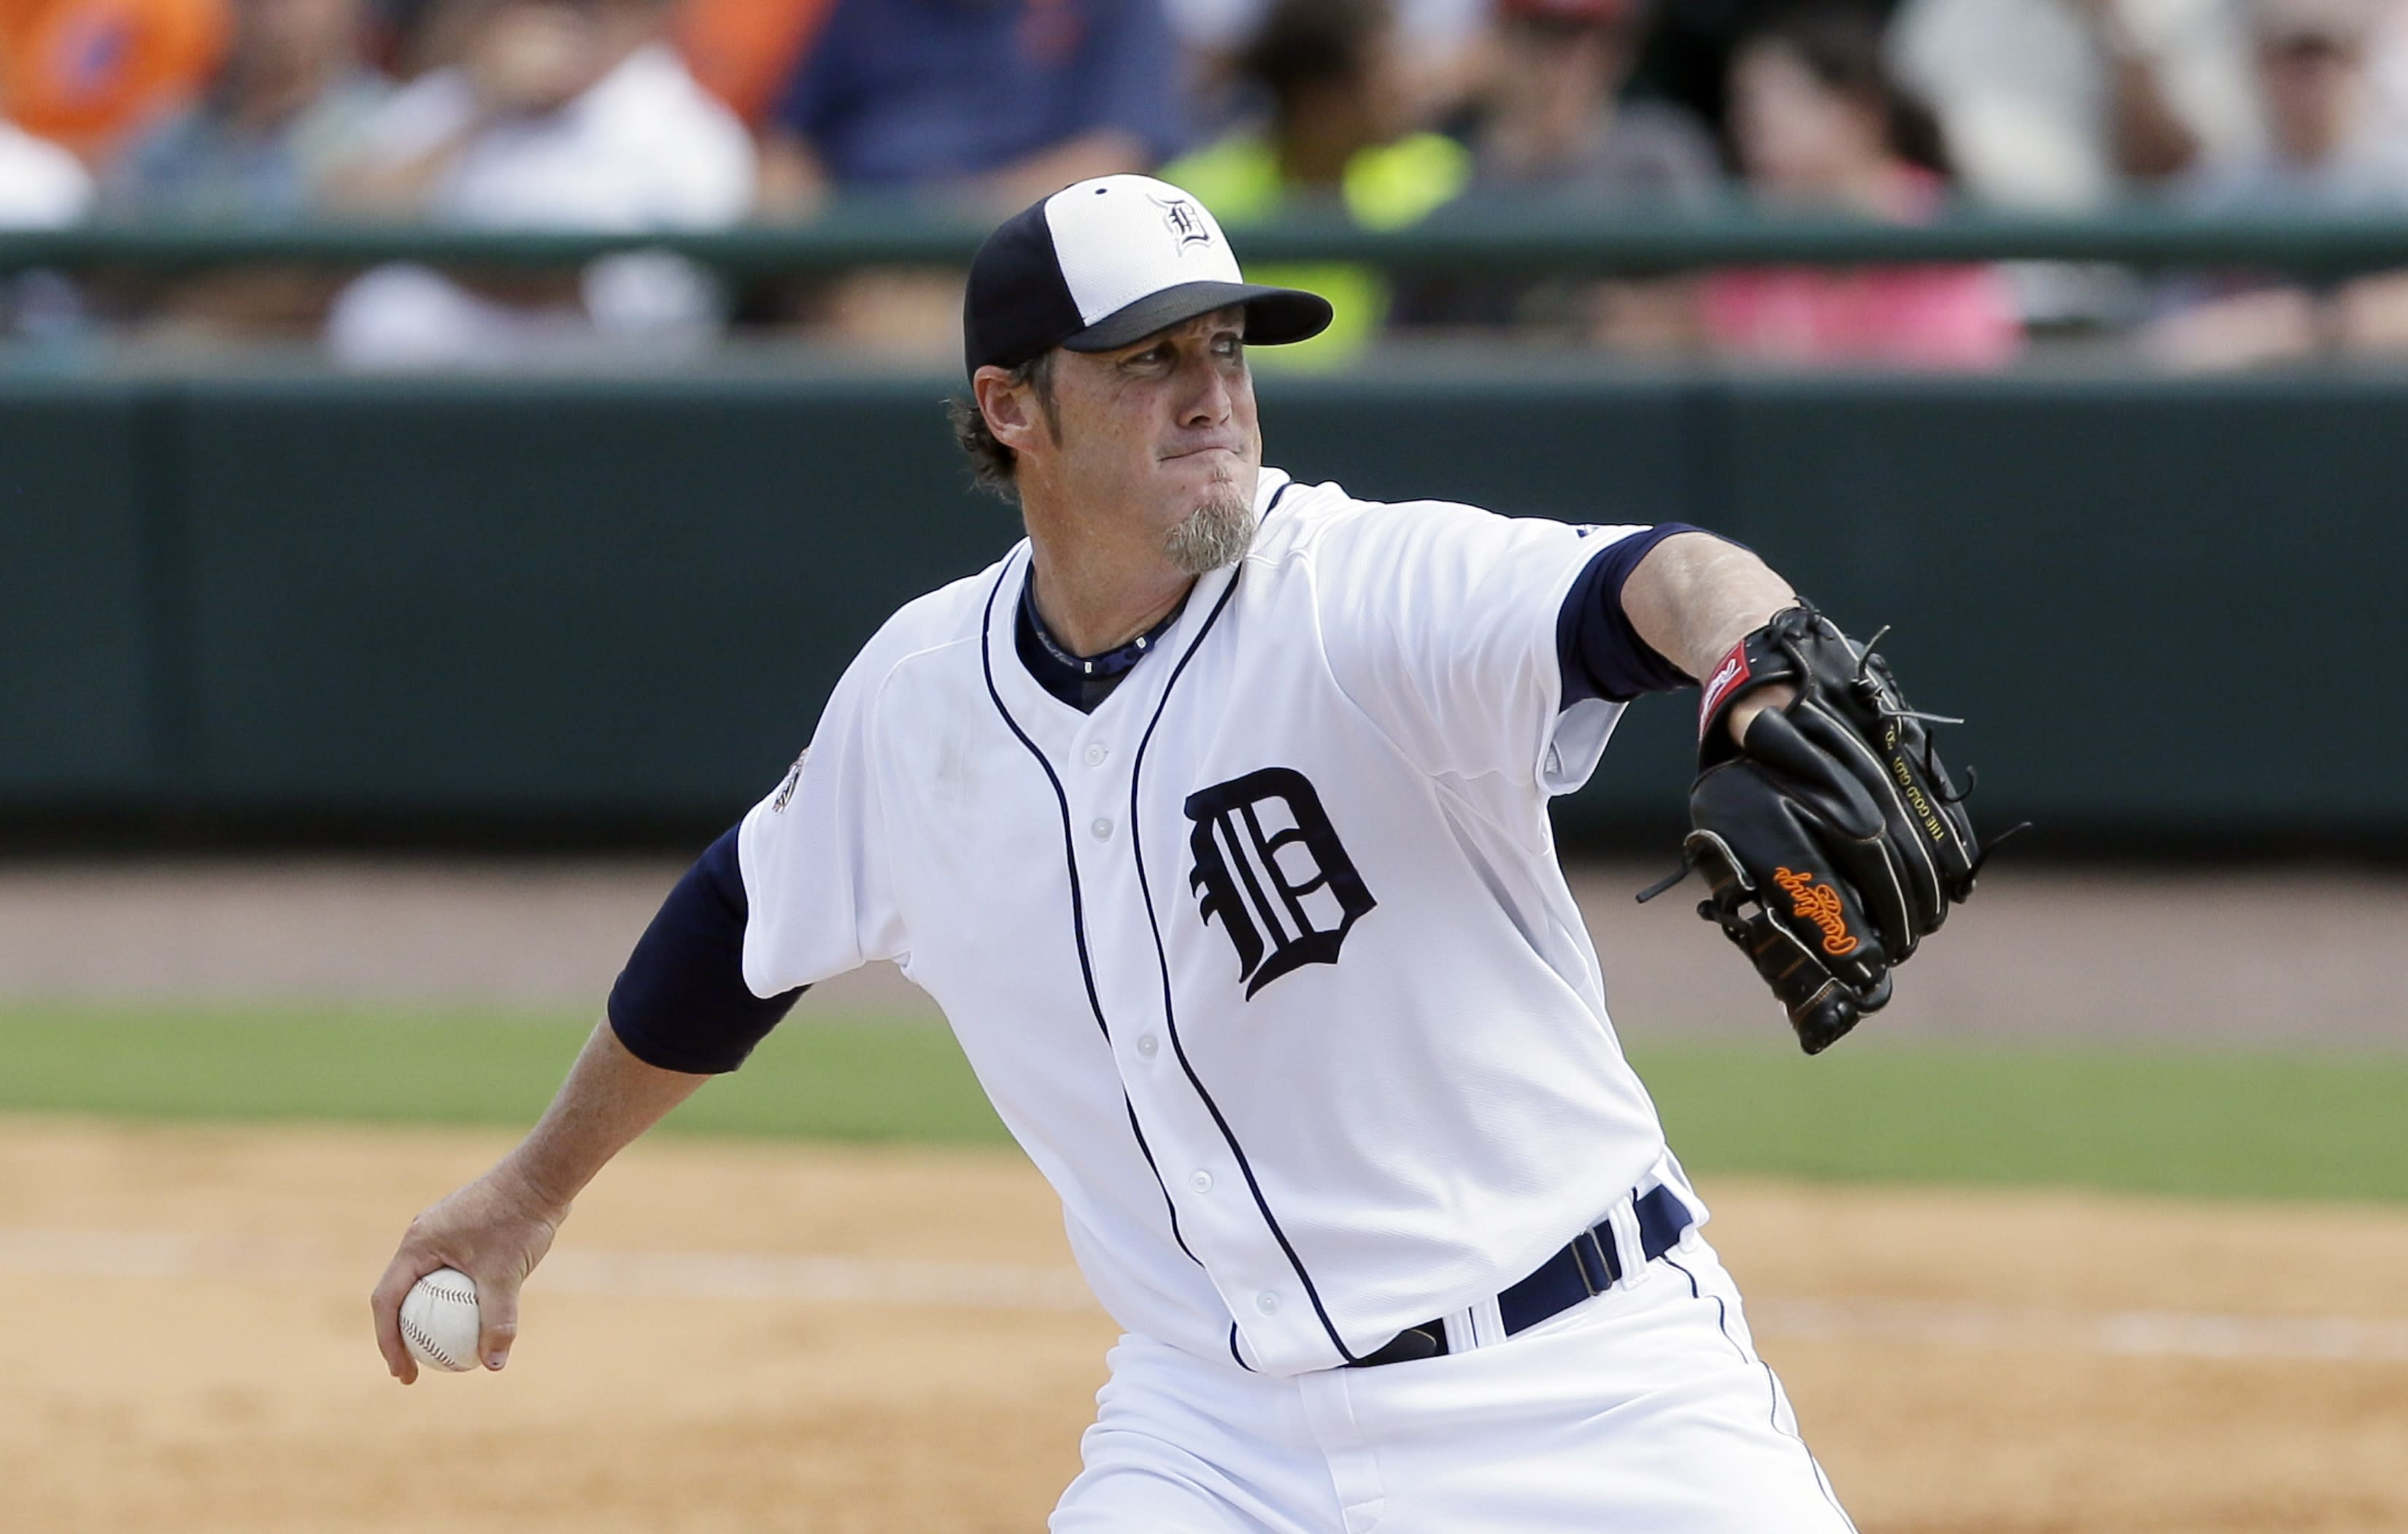 Joe Nathan needs Tommy John surgery but doesn't plan to retire